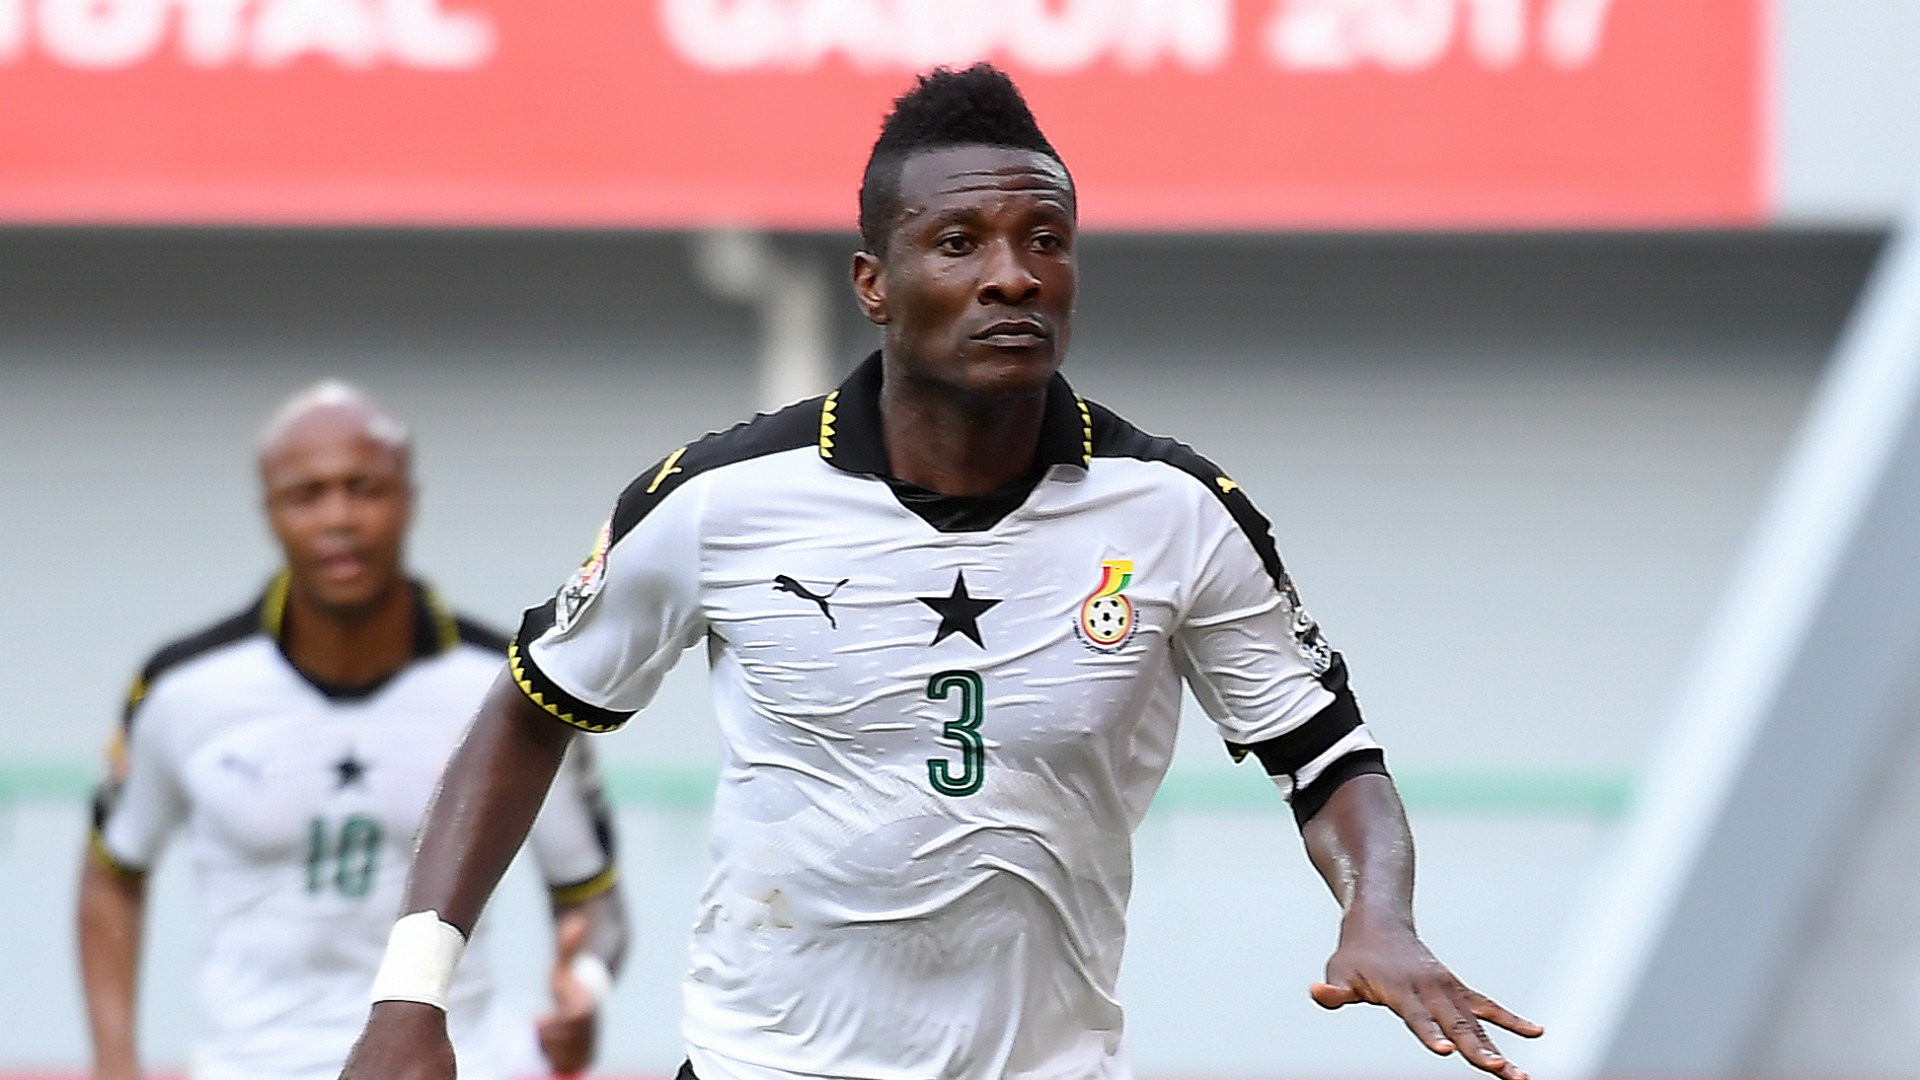 Can returnee Asamoah Gyan inspire Ghana at 2019 Afcon?